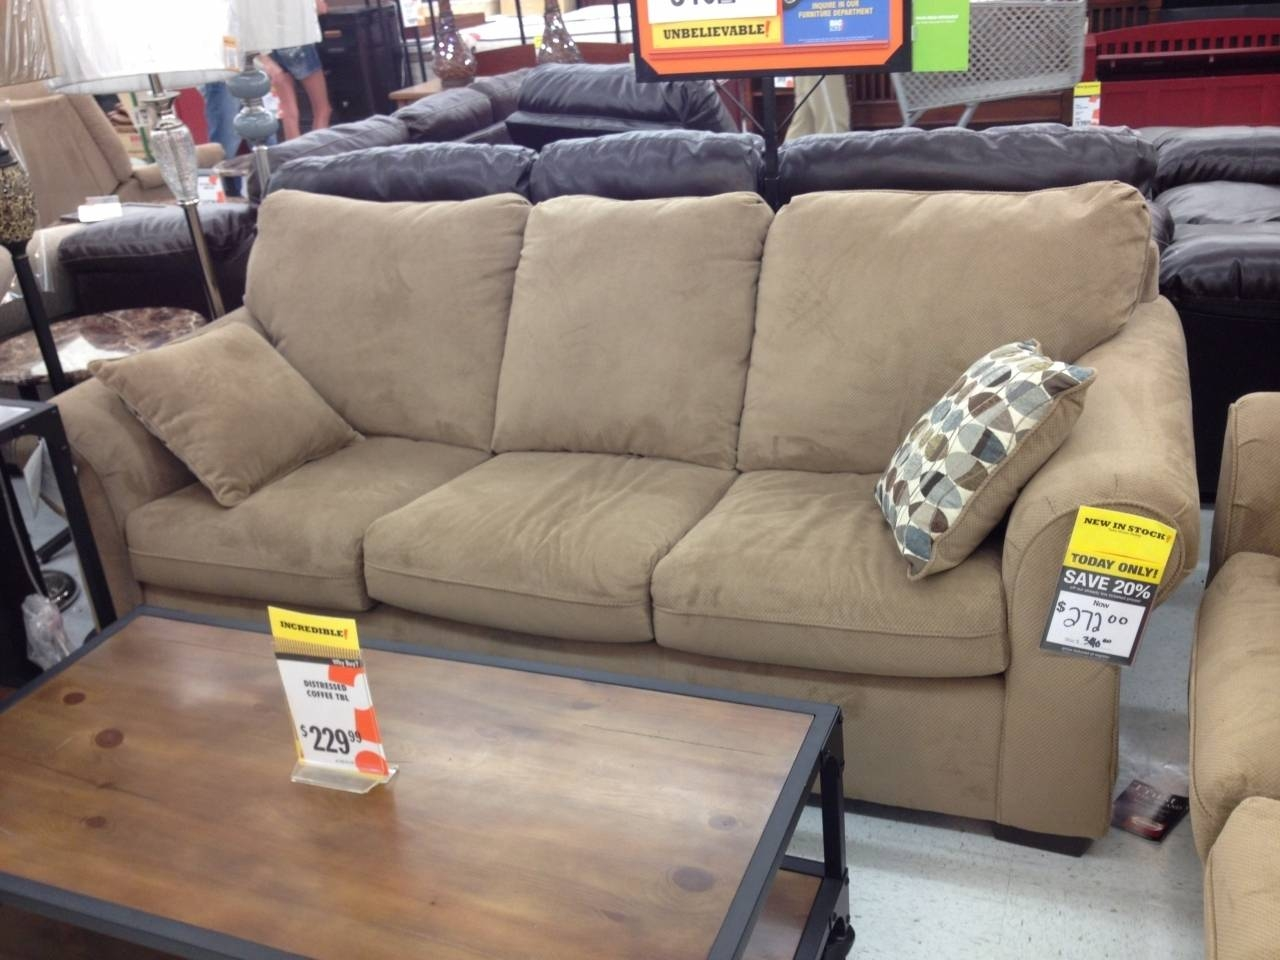 Best Small Sectional Sleeper Sofa Chaise - Sectional Sofas And Couches with regard to Big Lots Sofas (Image 1 of 30)